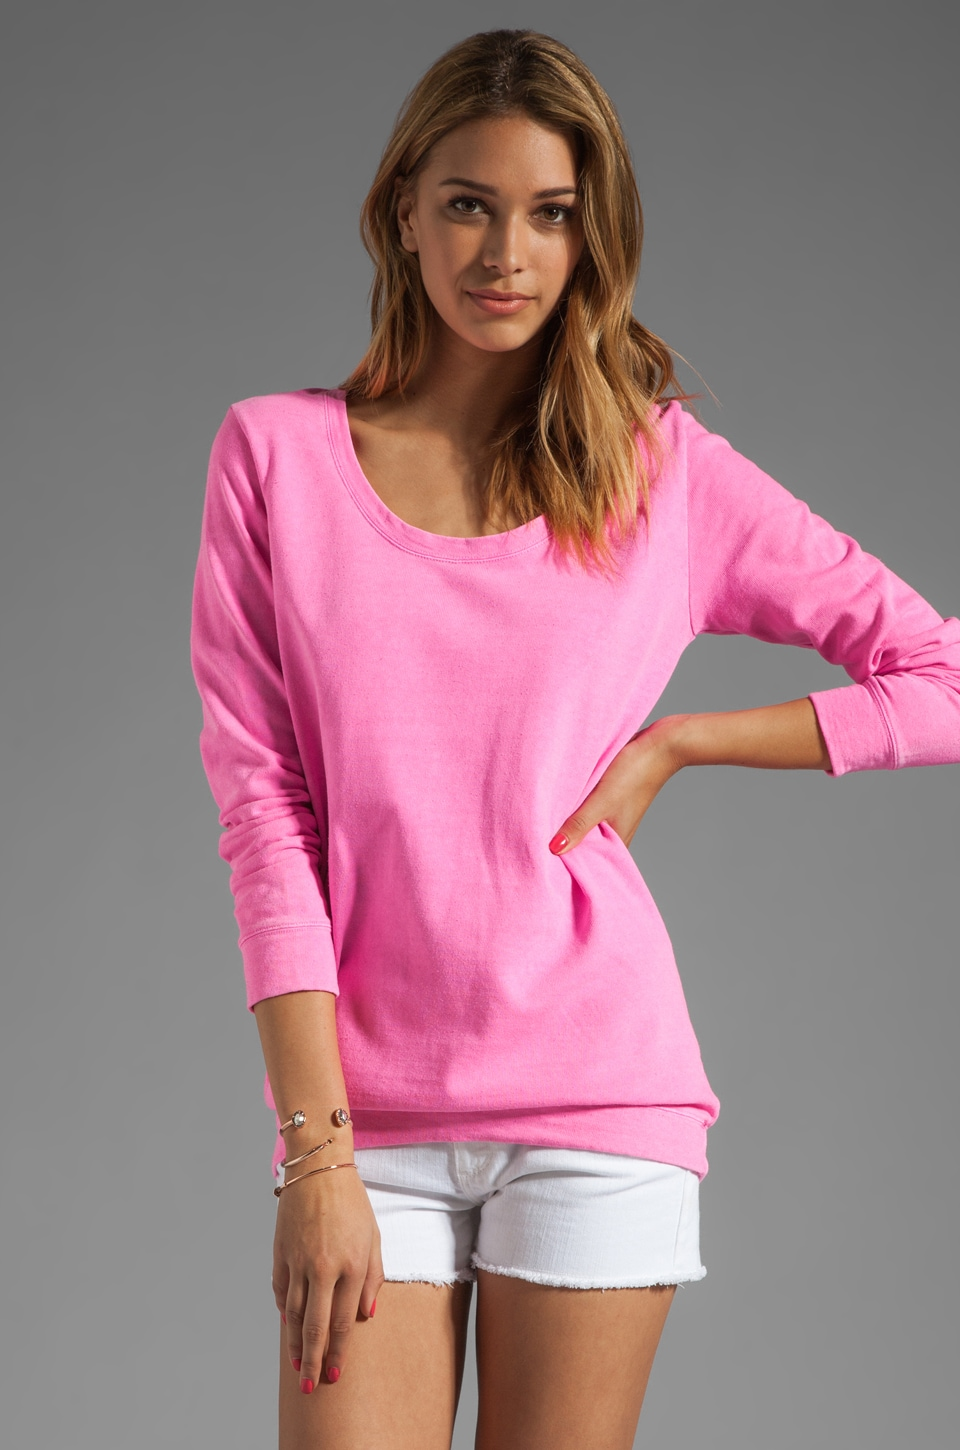 MONROW White Fleece Boyfriend Sweatshirt in Neon Pink